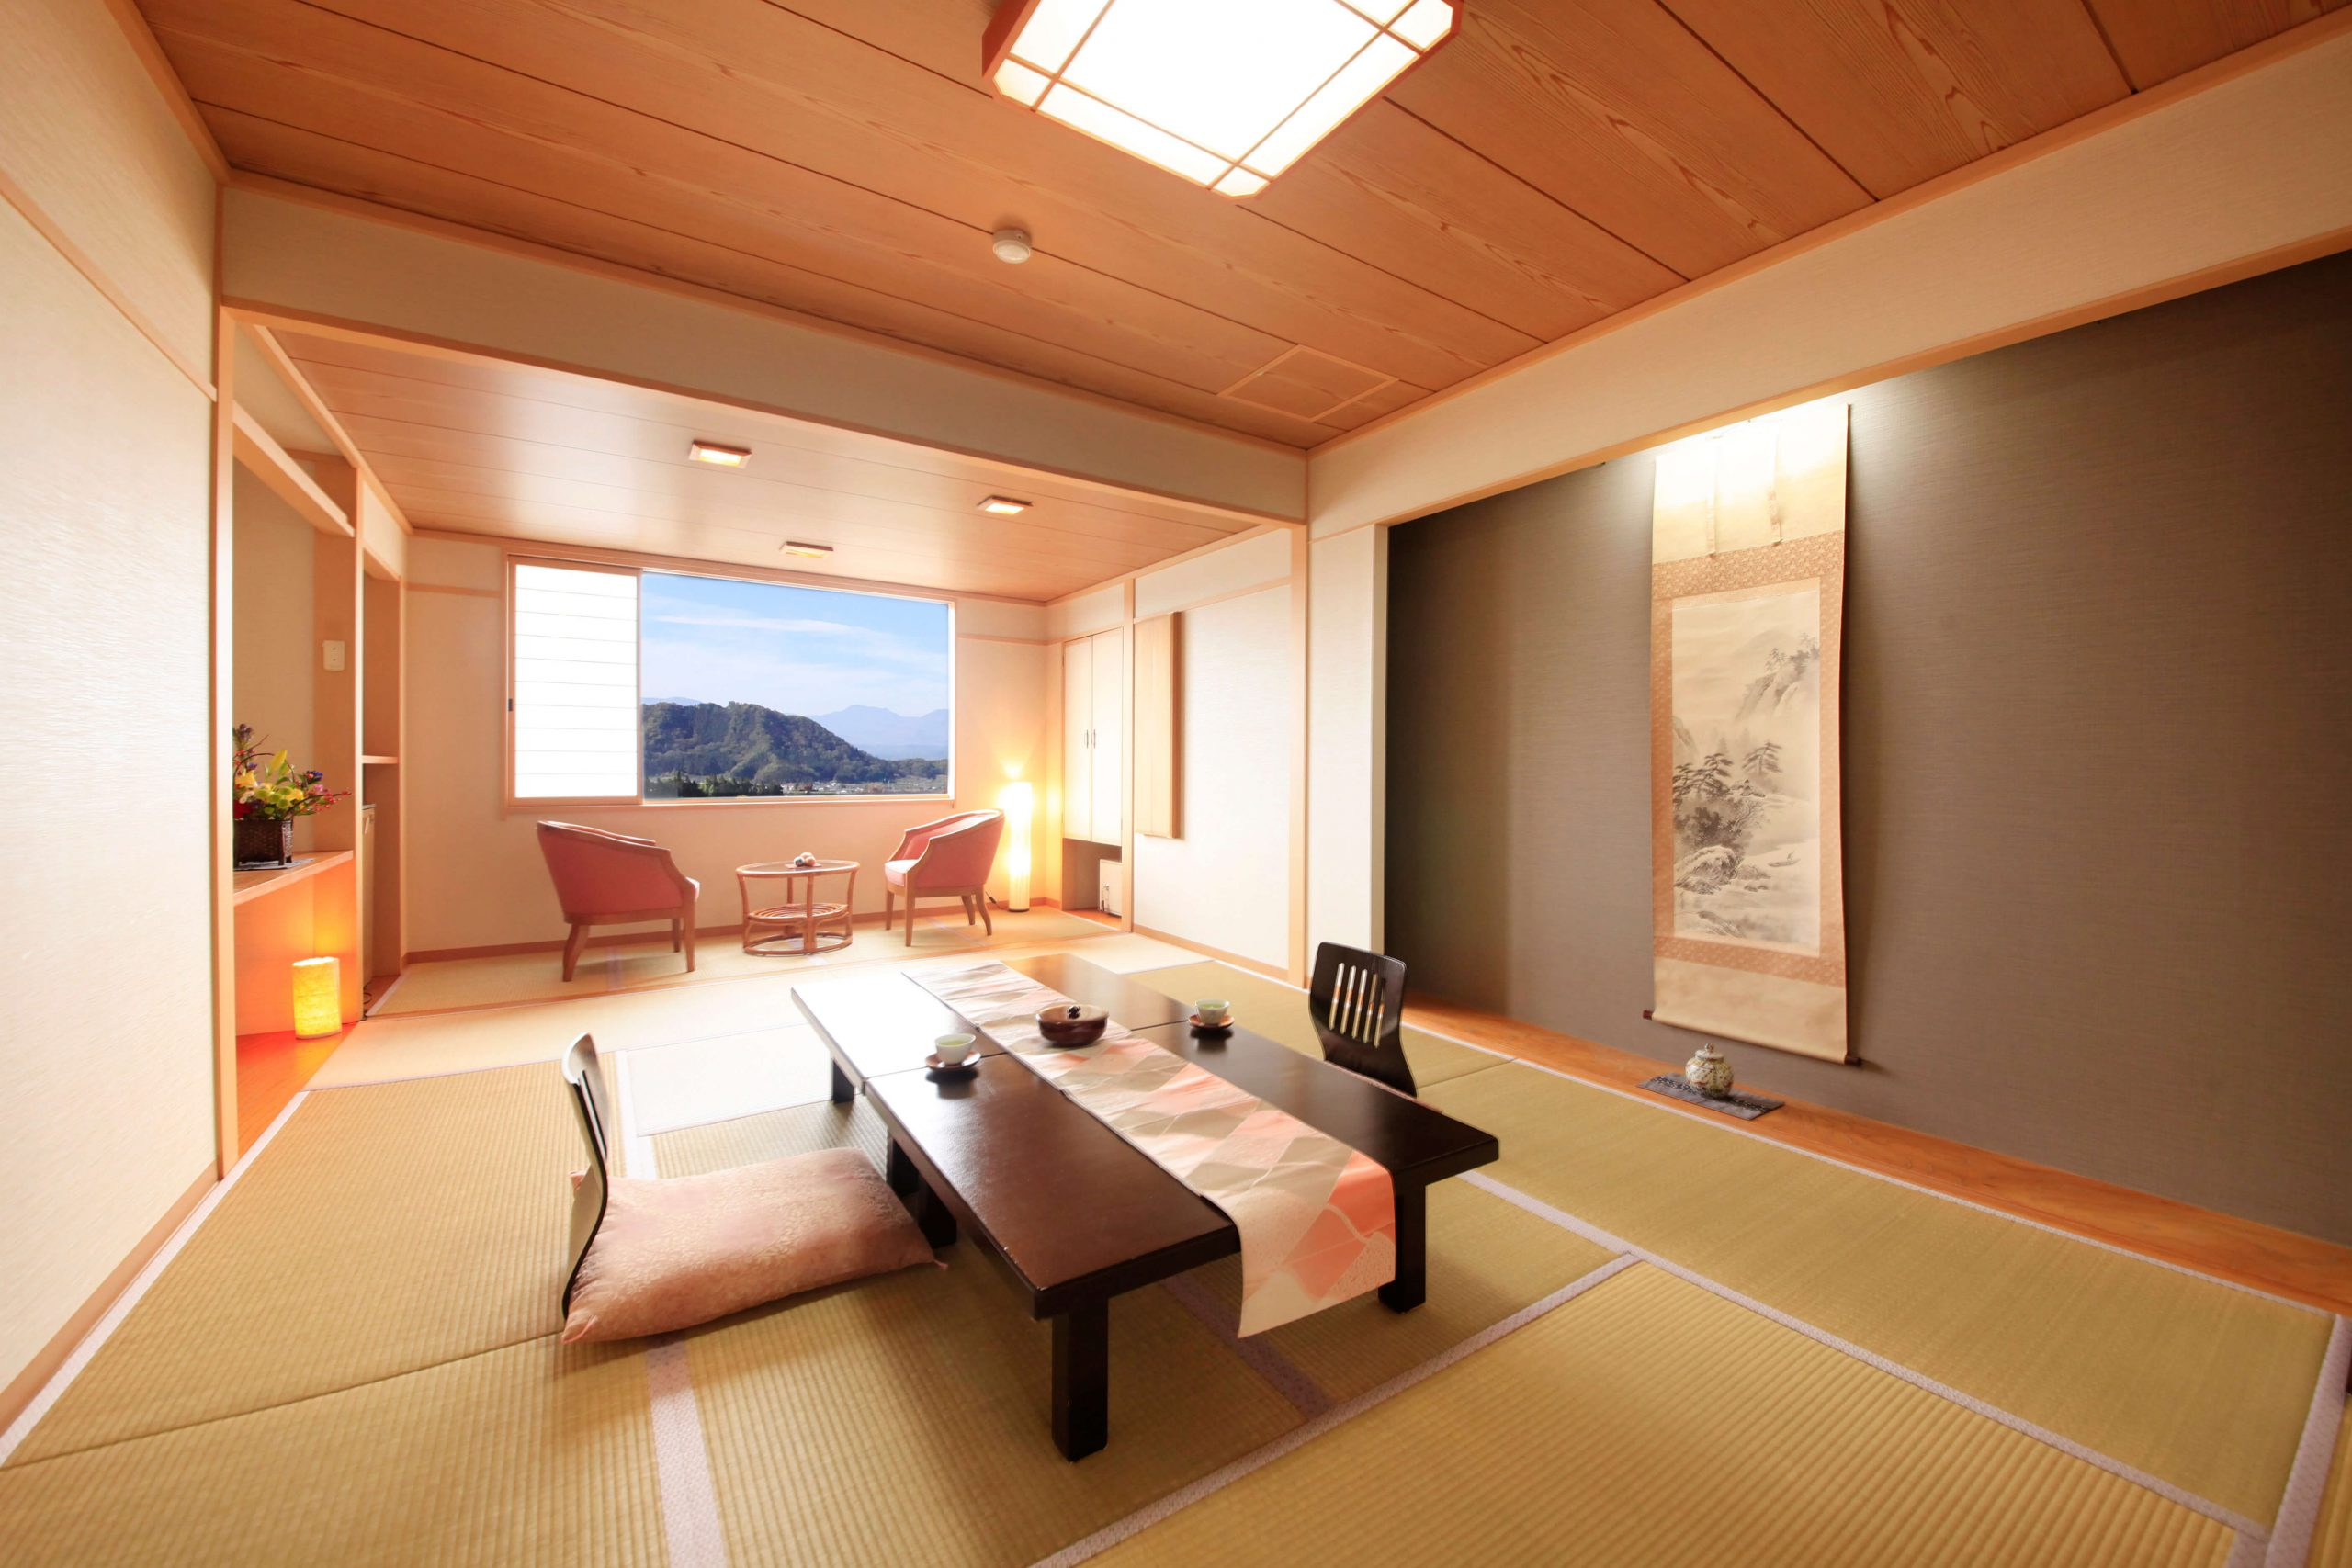 Japanese & Western Rooms